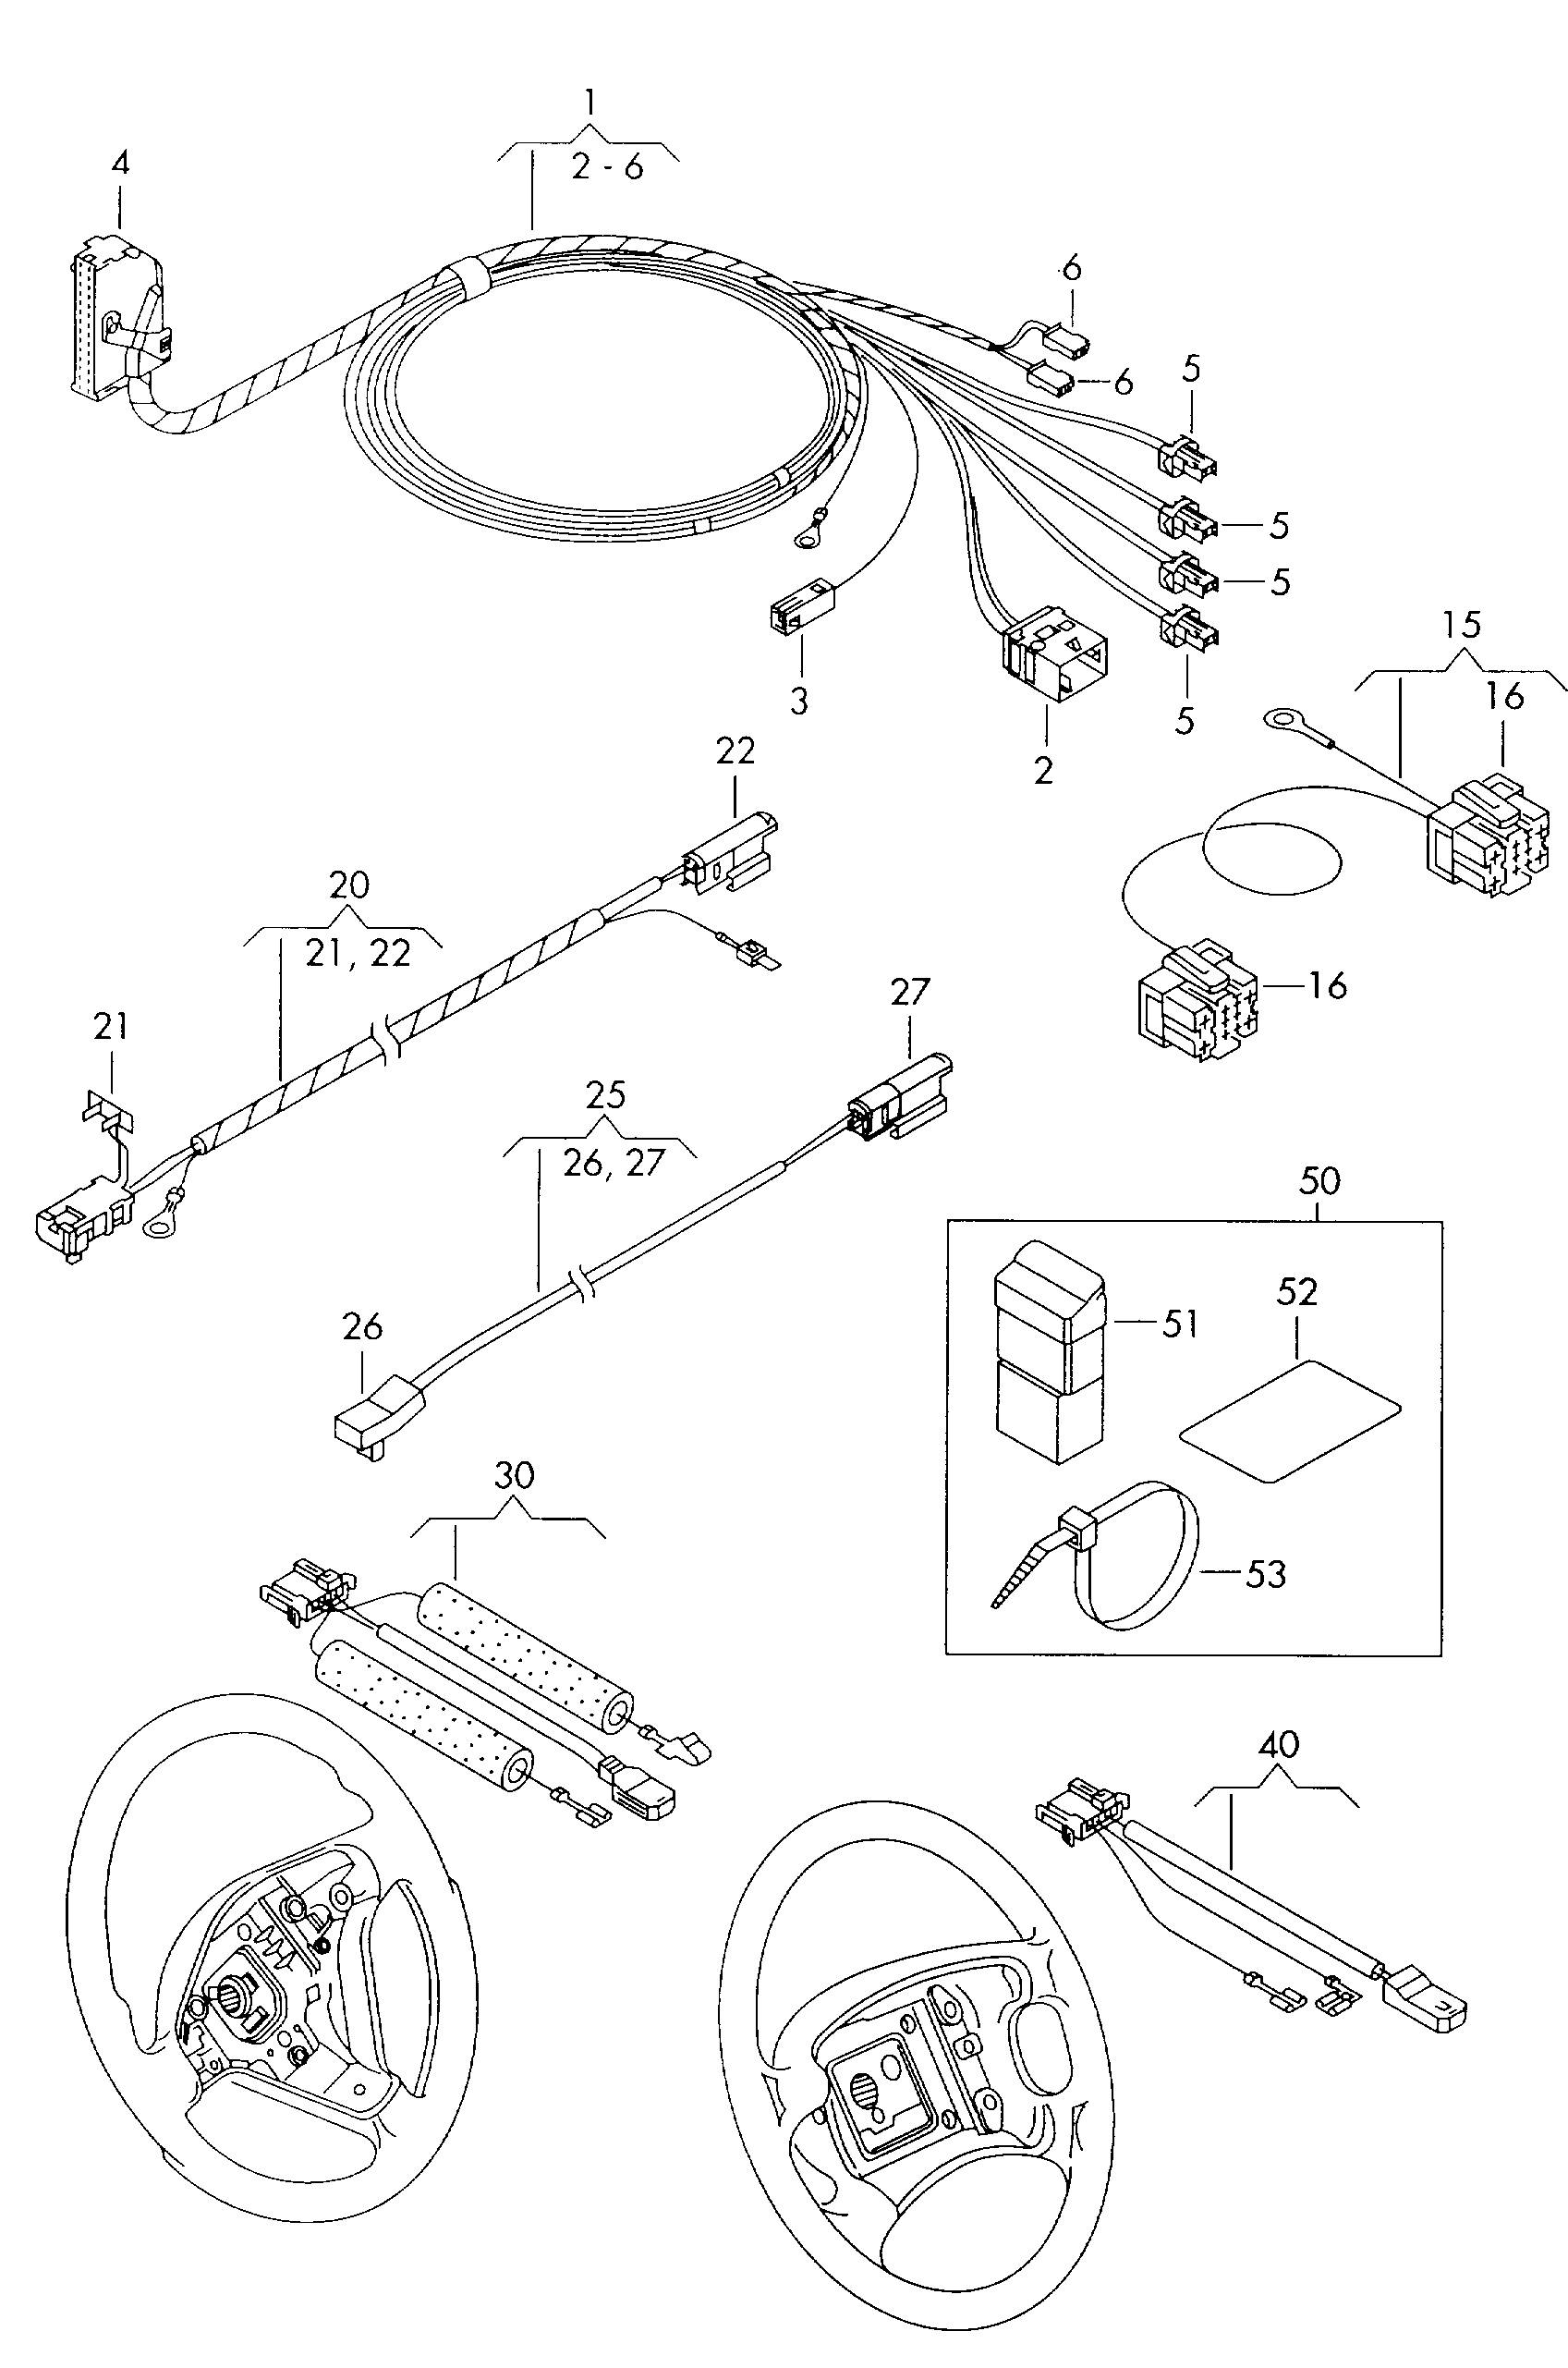 vw gti radio wiring diagram discover your wiring vw golf airbag wiring diagram